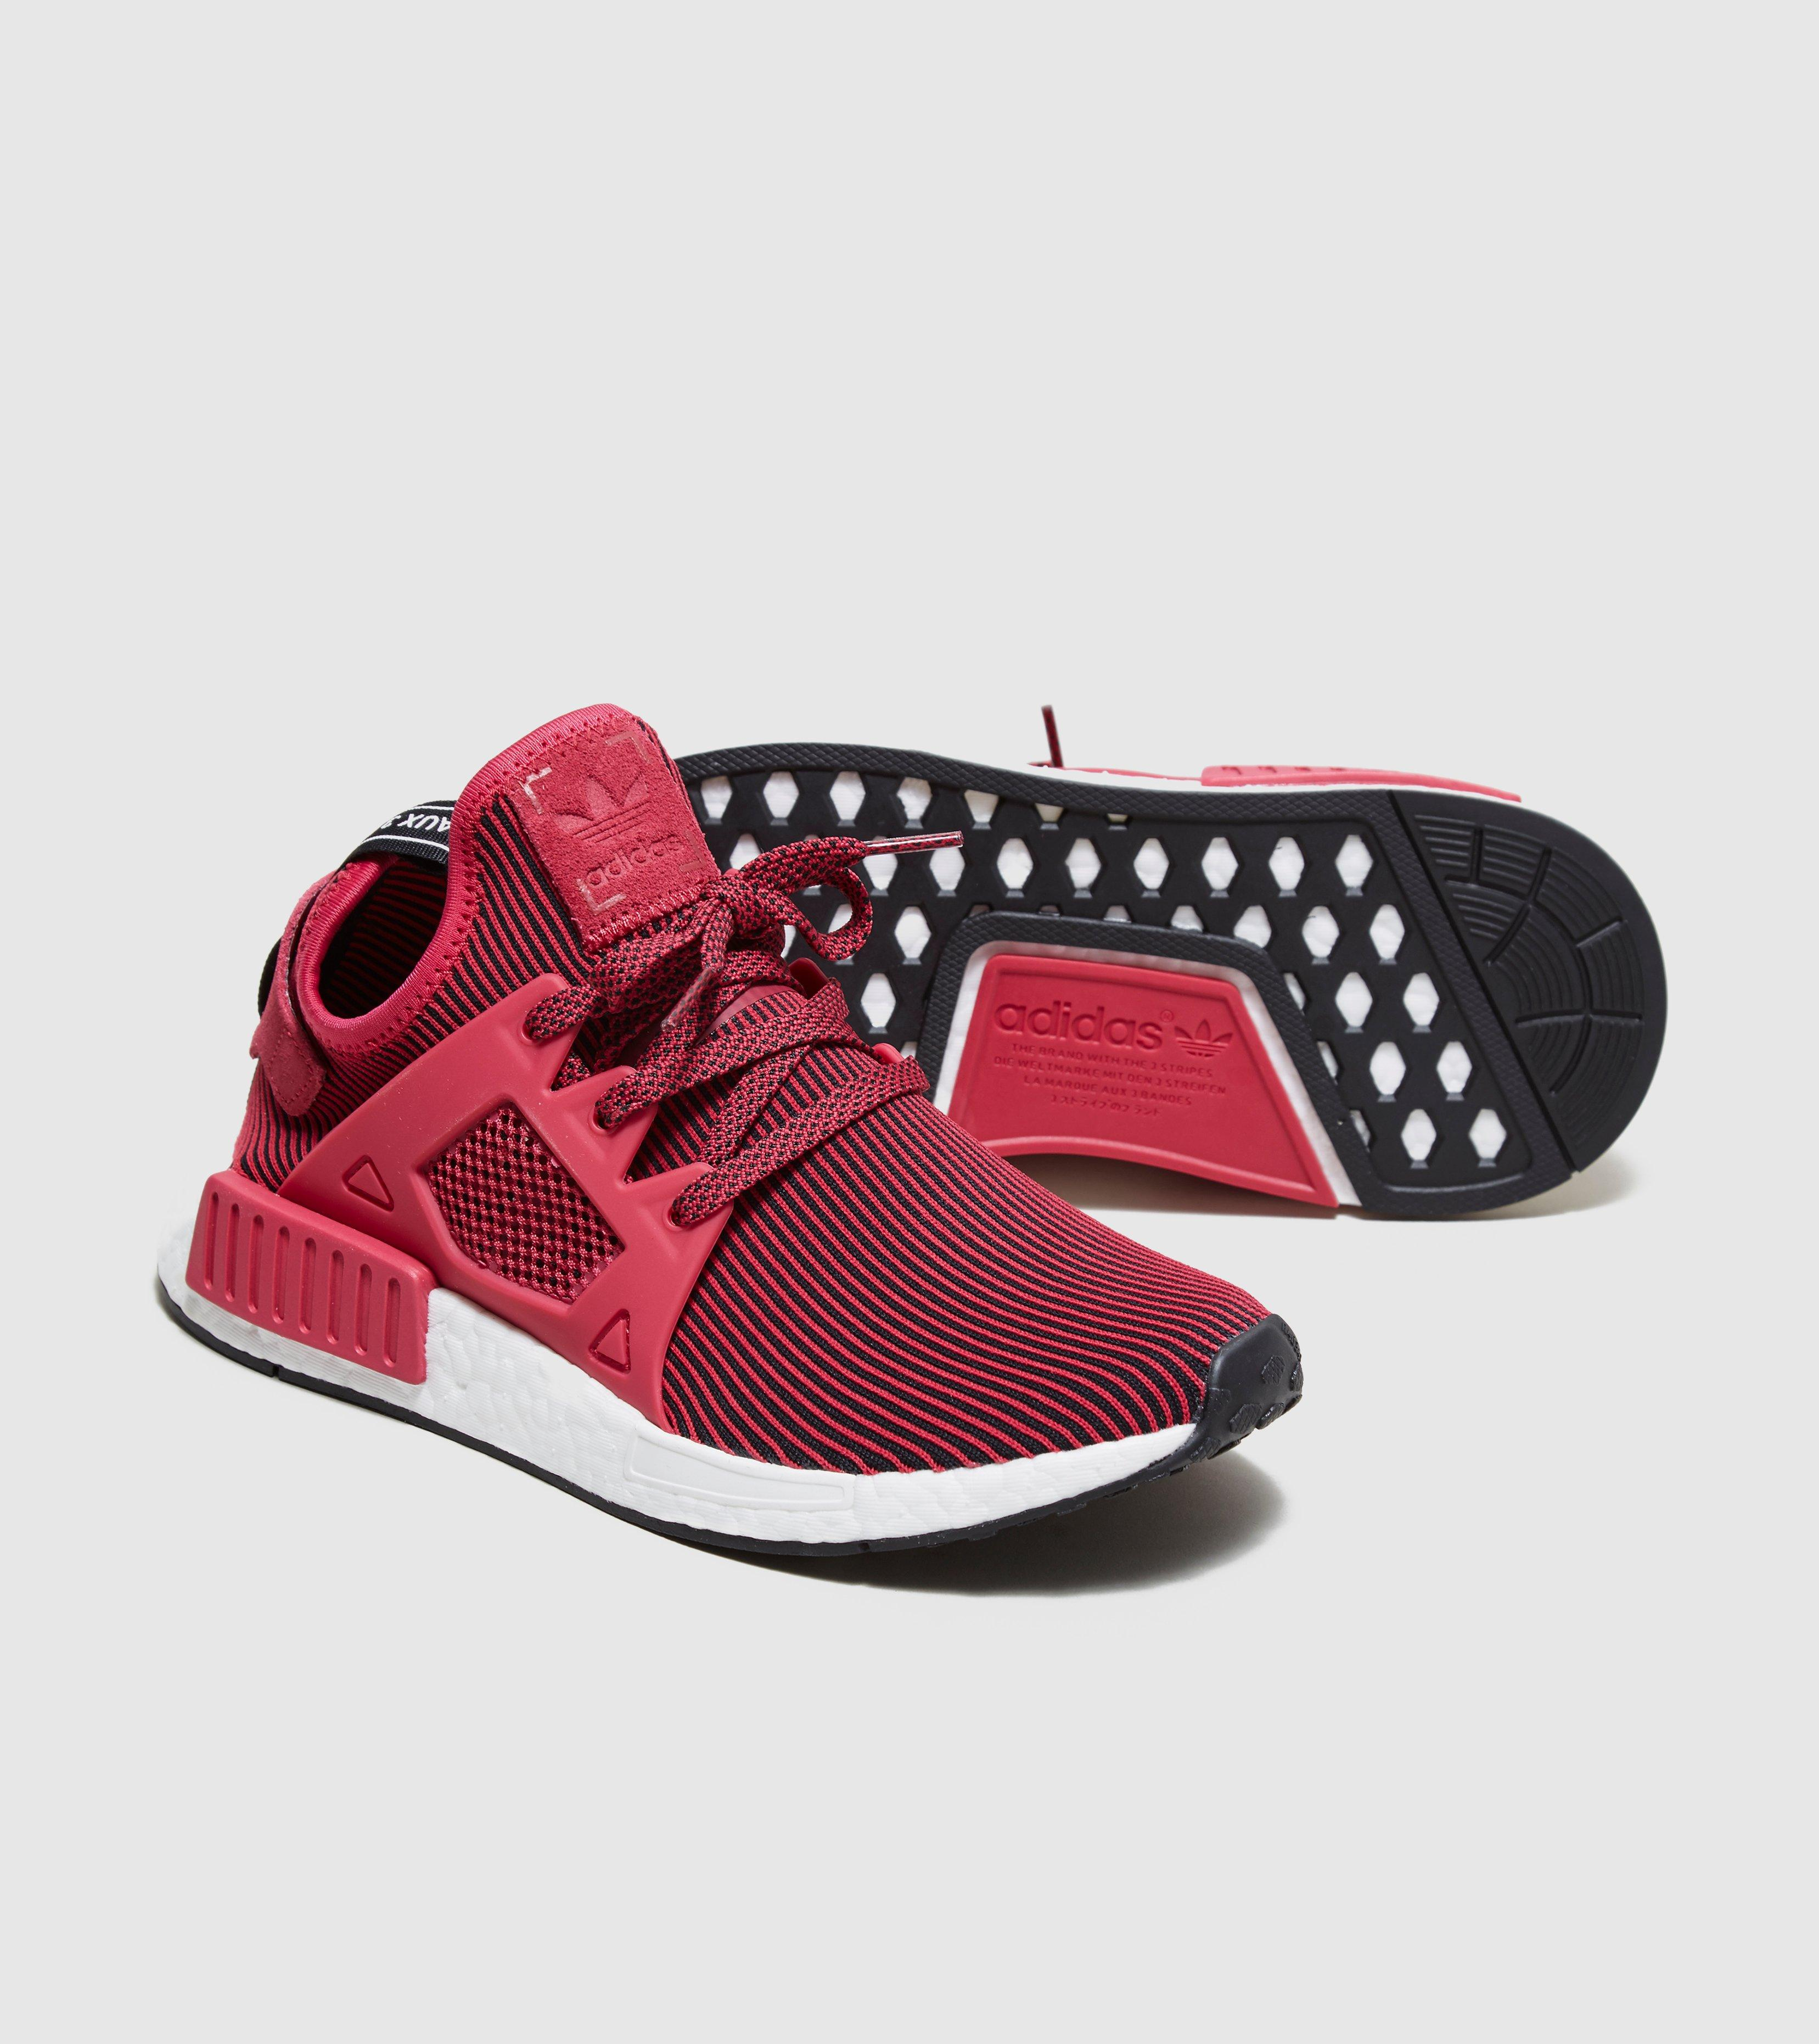 all red adidas yeezy ultra boost piros adidas r1 black and white